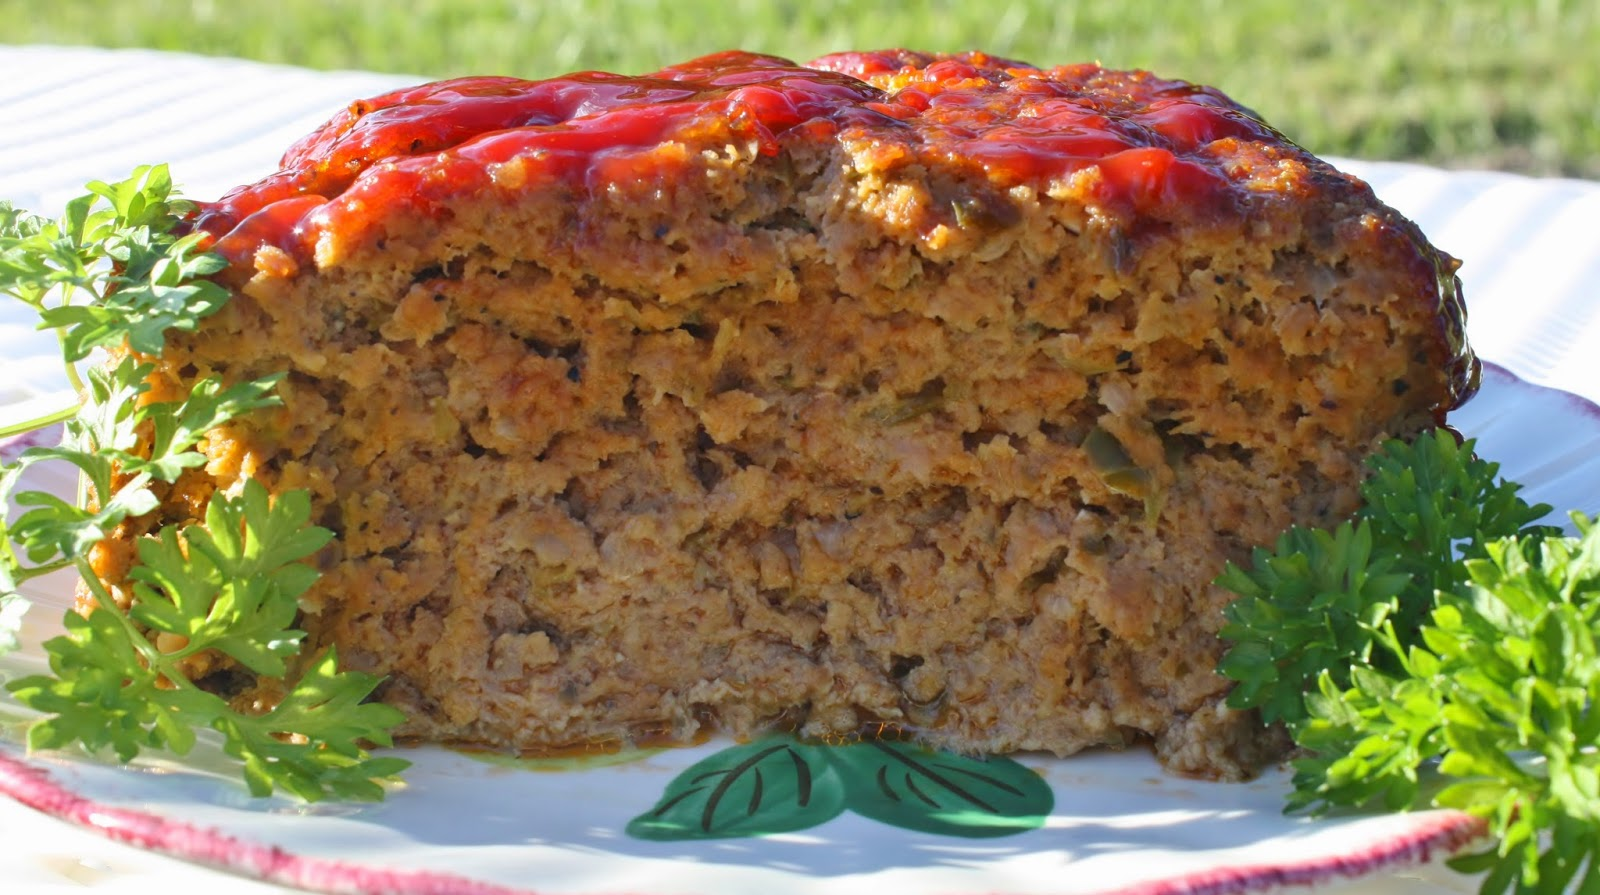 ... of Long Island and Central Florida: Pastor Ryan's Cajun Meatloaf